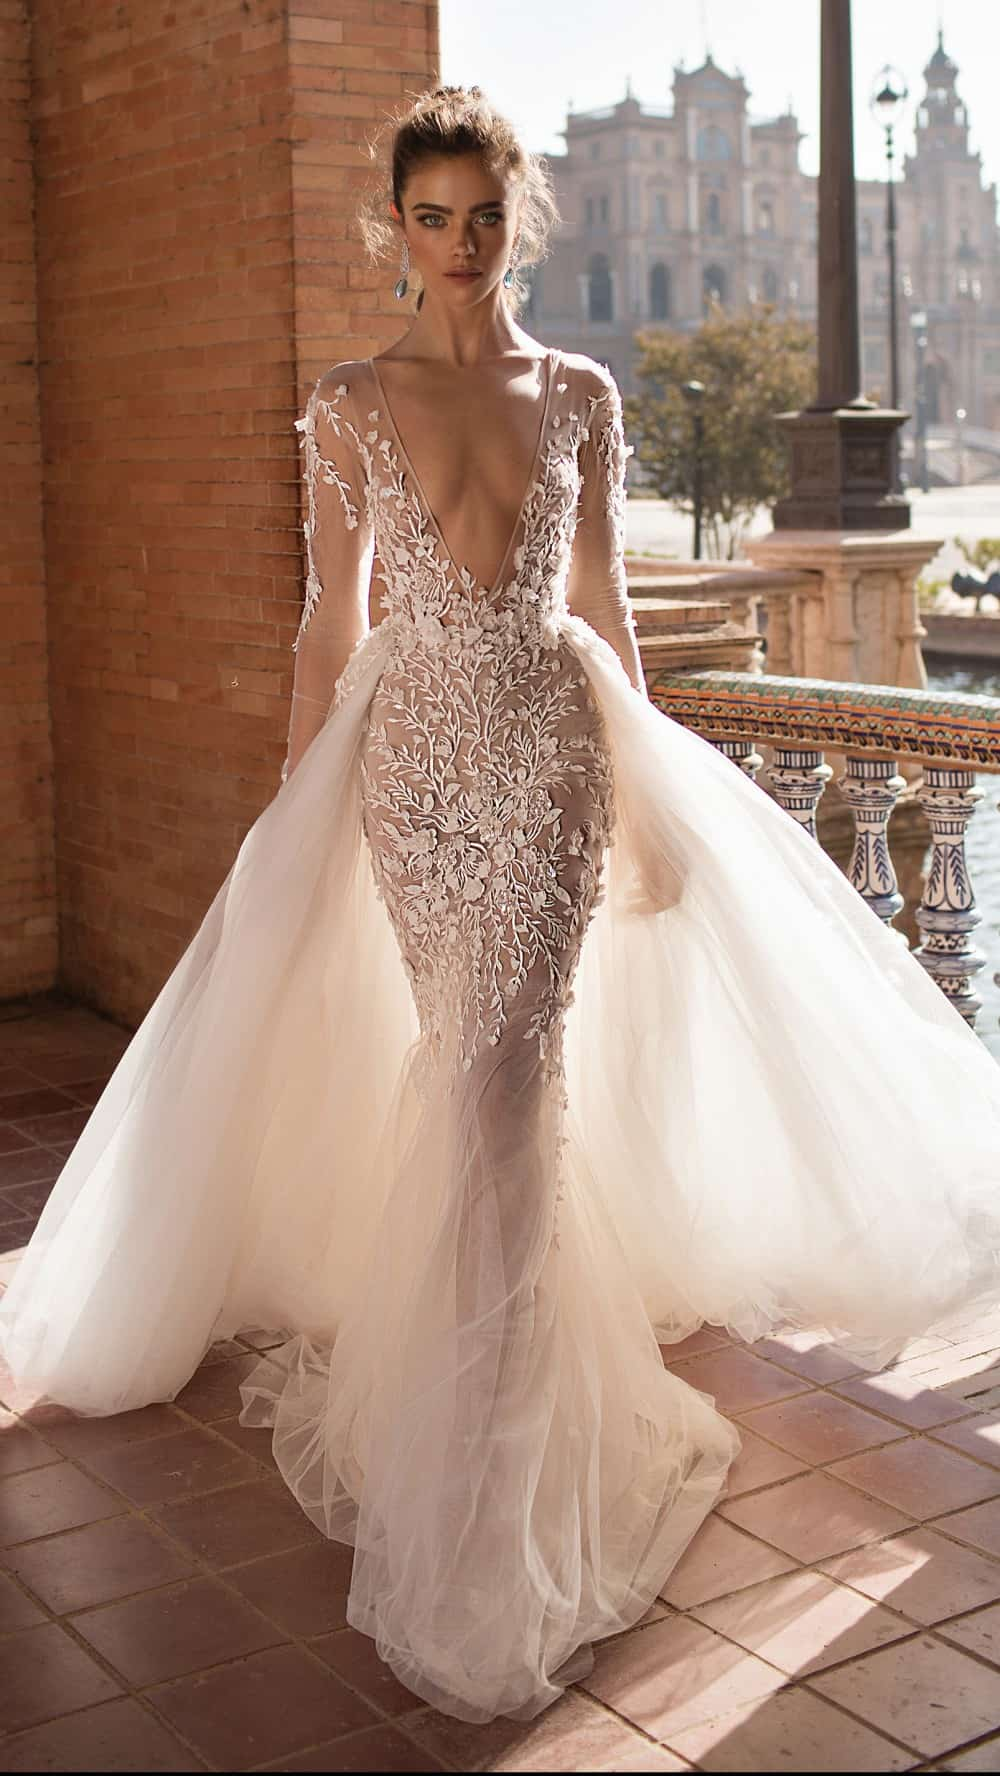 plunging neck wedding dress by Berta Bridal